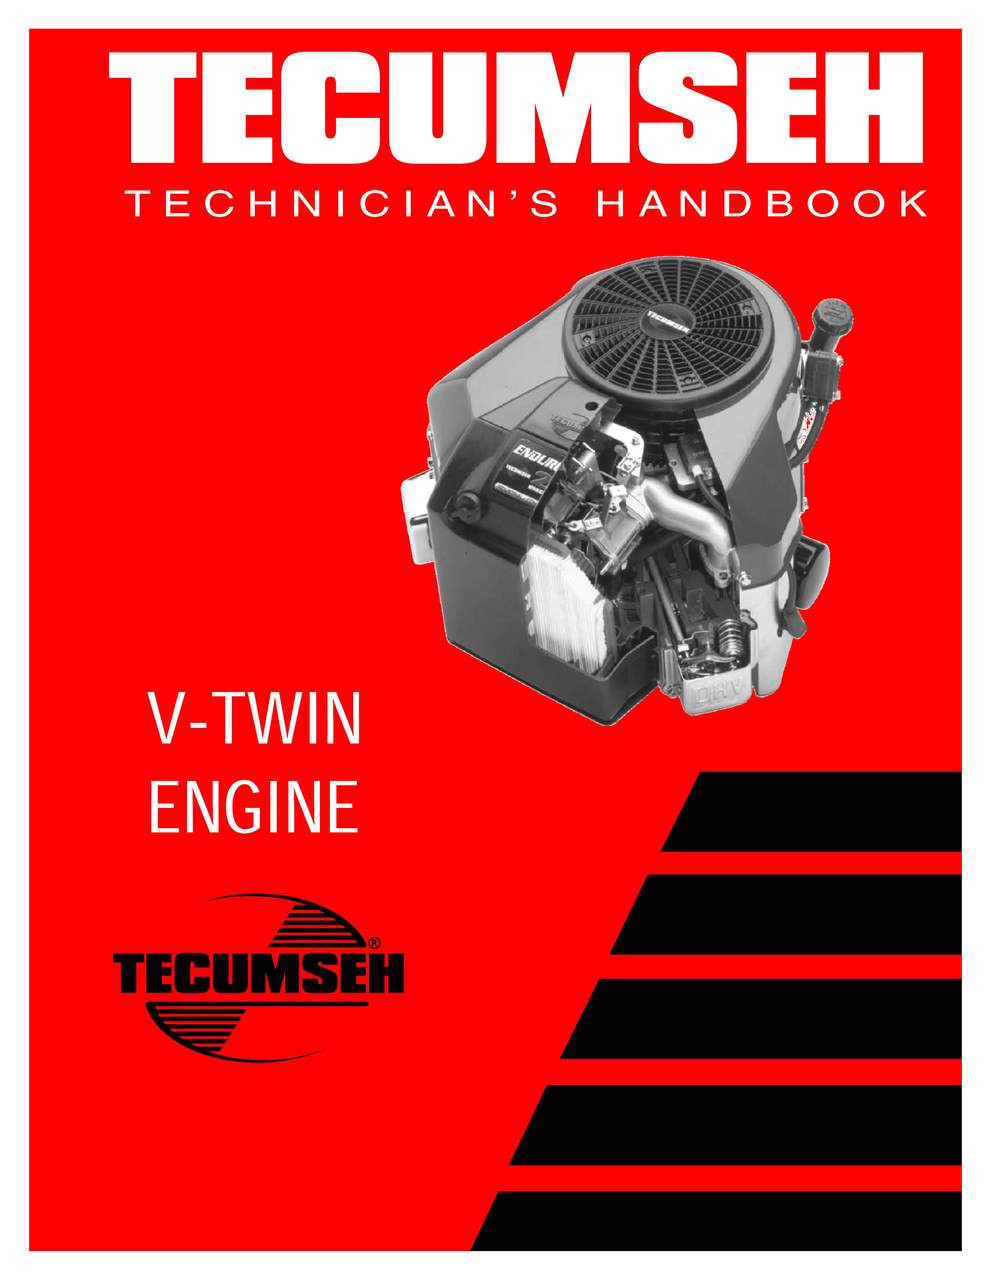 tecumseh engine service repair manual ohh ohv 4 cycle ohh50 65 rh aeroteks com Tractor Service Manuals Service Manuals